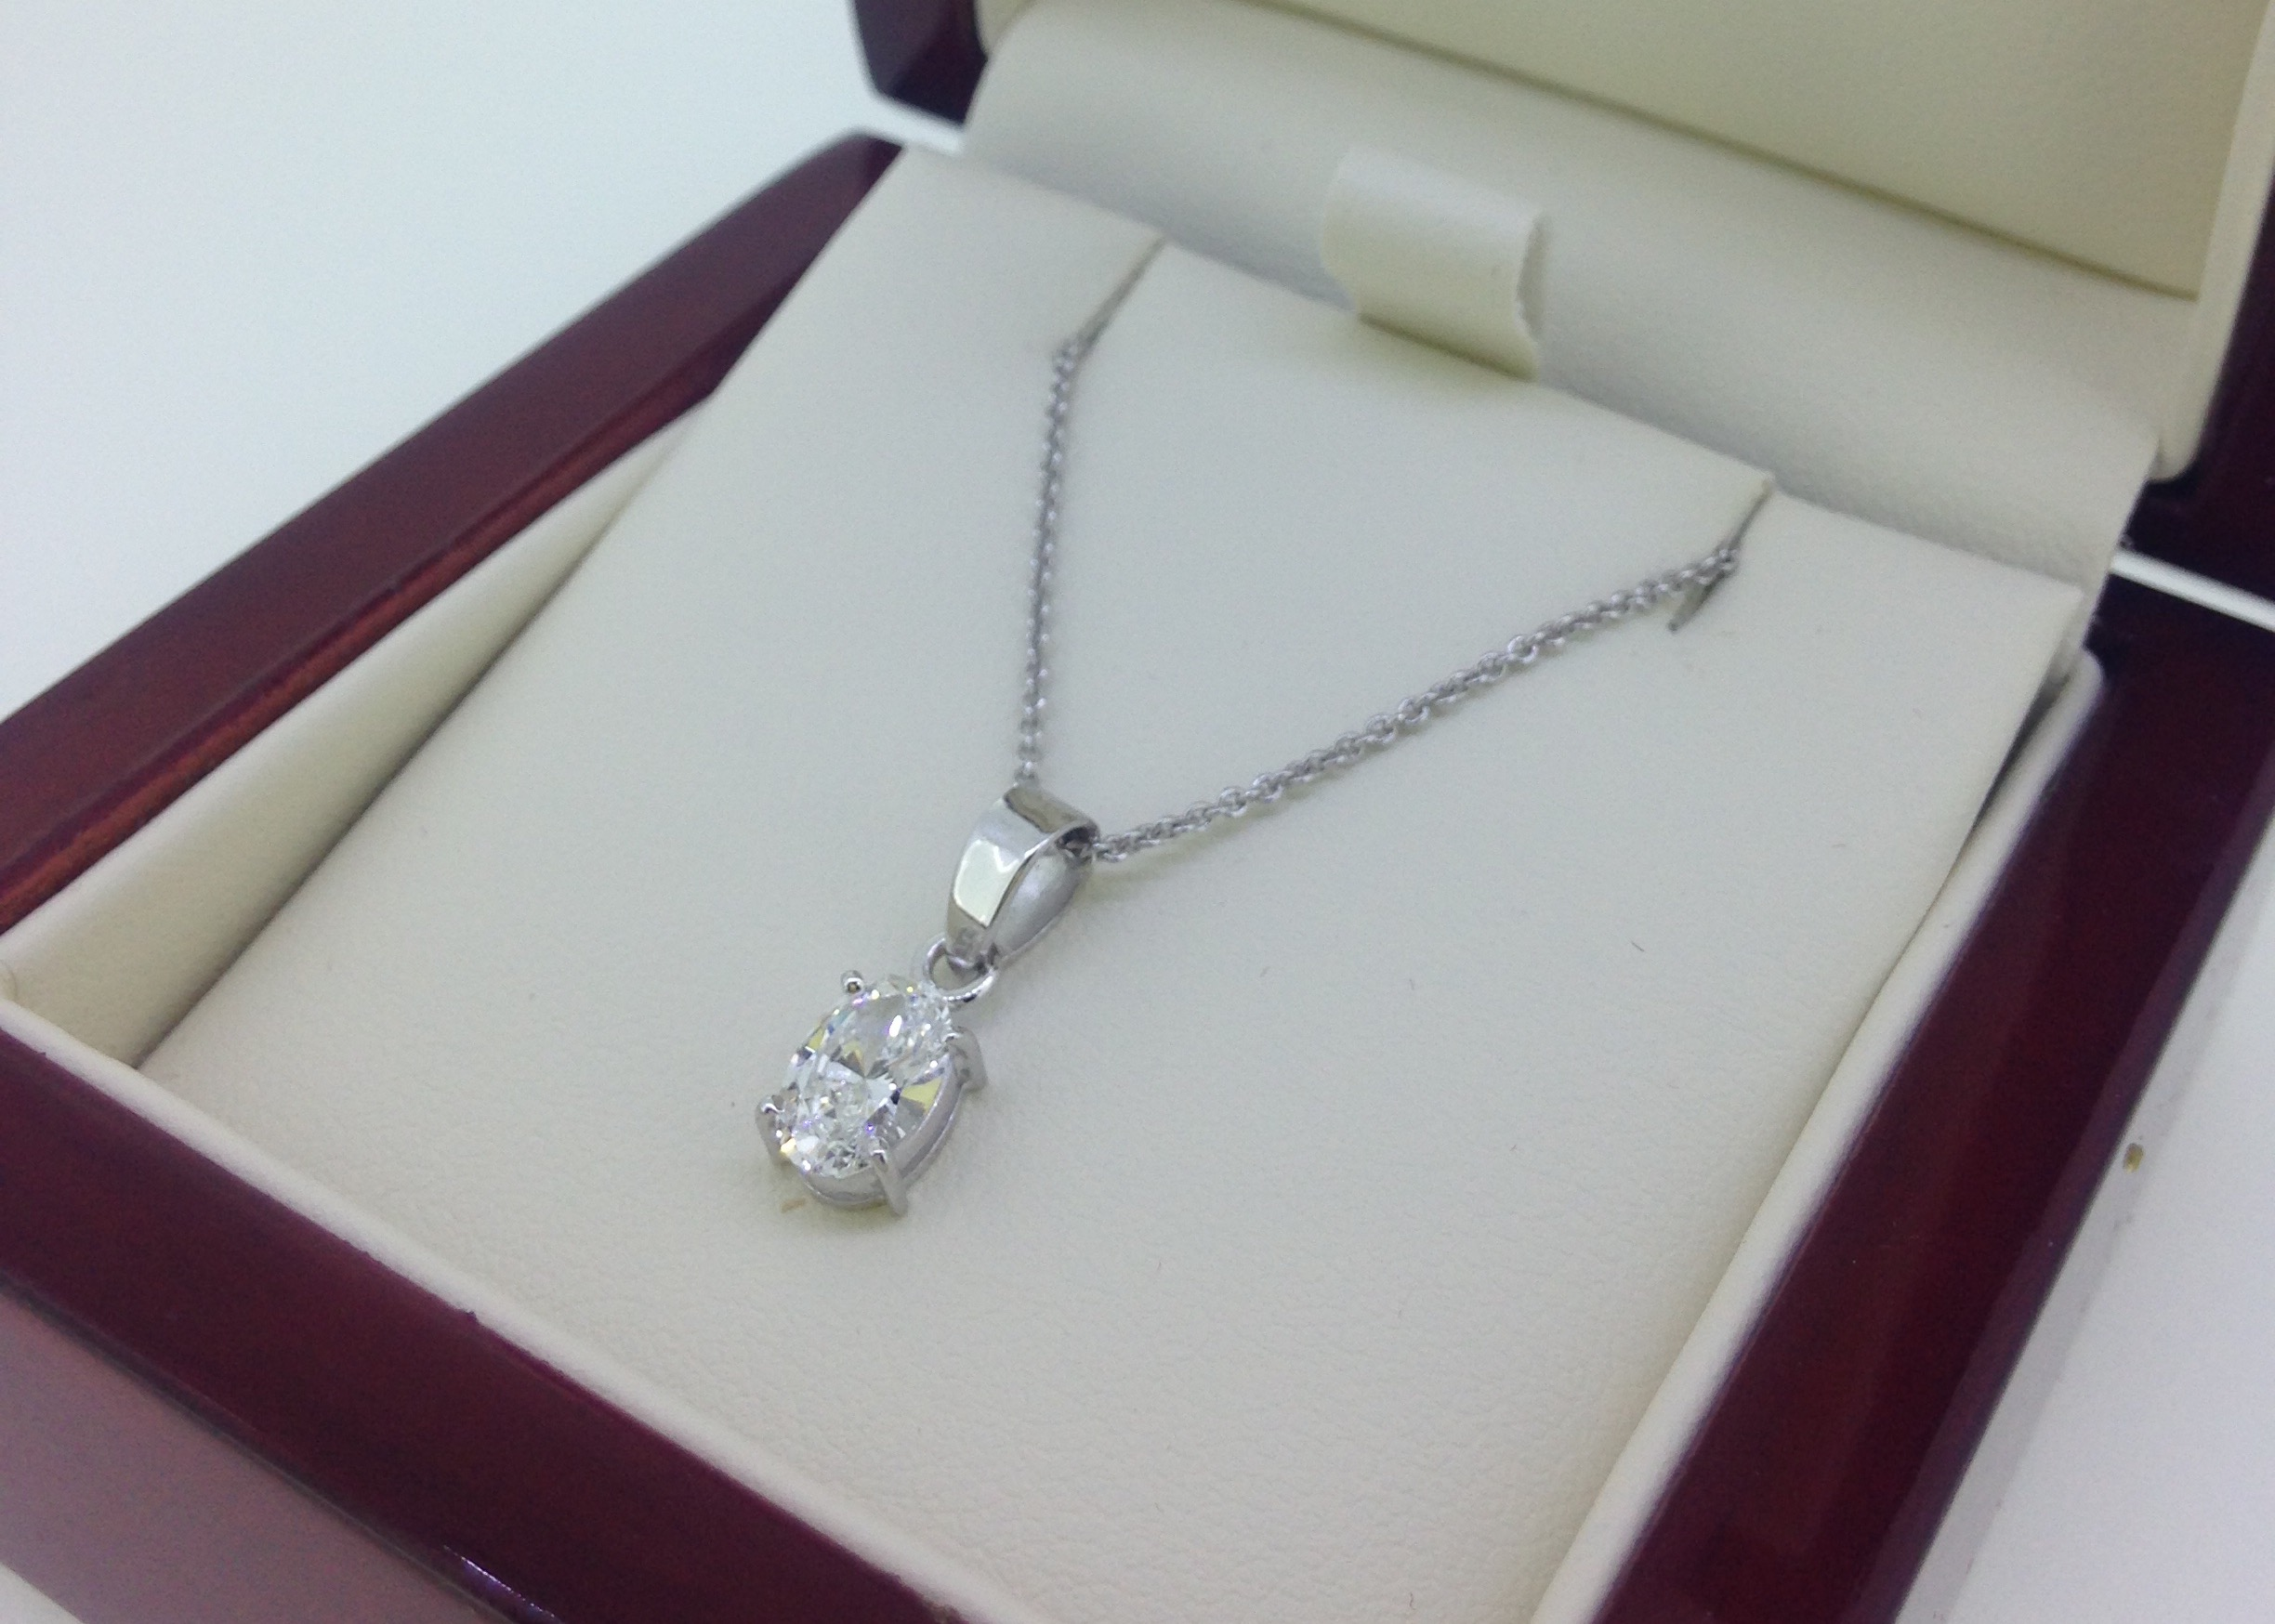 Sparkling diamond pendant valued over $10,000